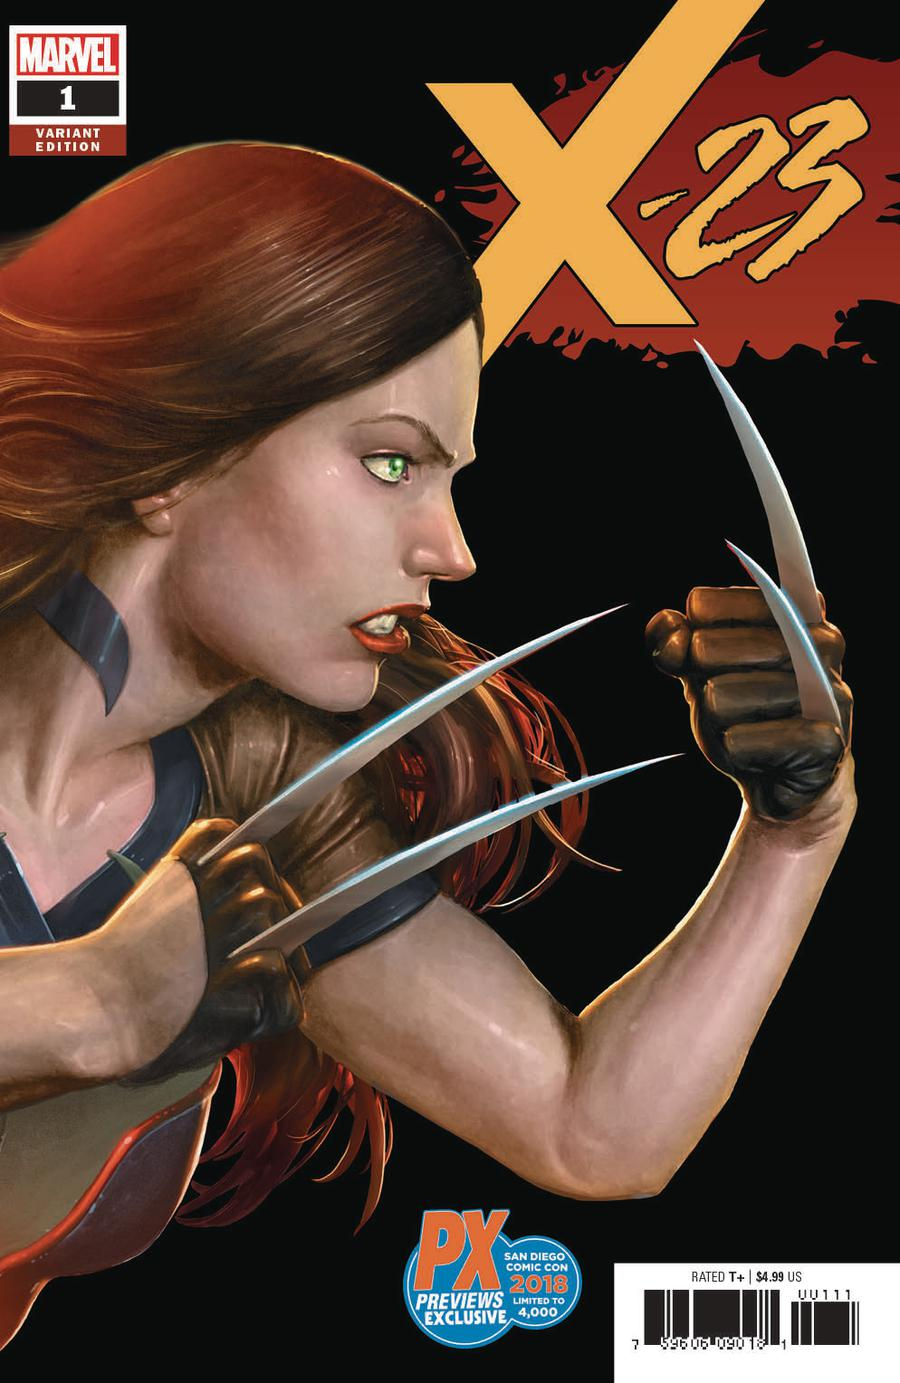 X-23 Vol 3 #1 Cover G Variant SDCC 2018 Exclusive Cover